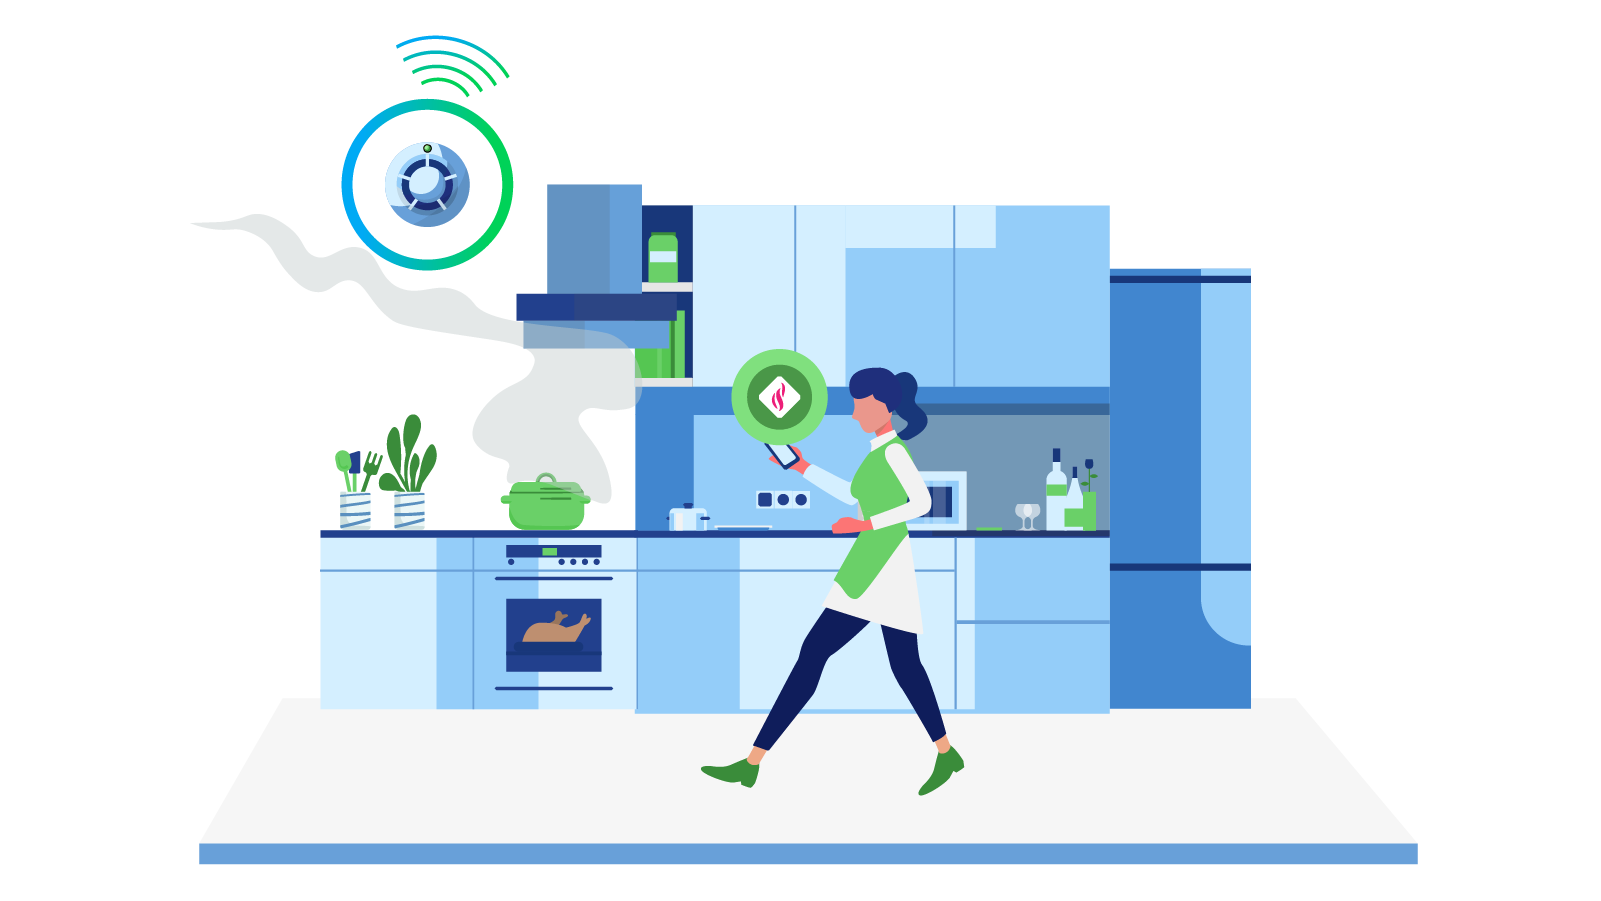 Get instant alerts when your smart sensors detect fire, smoke or leaks